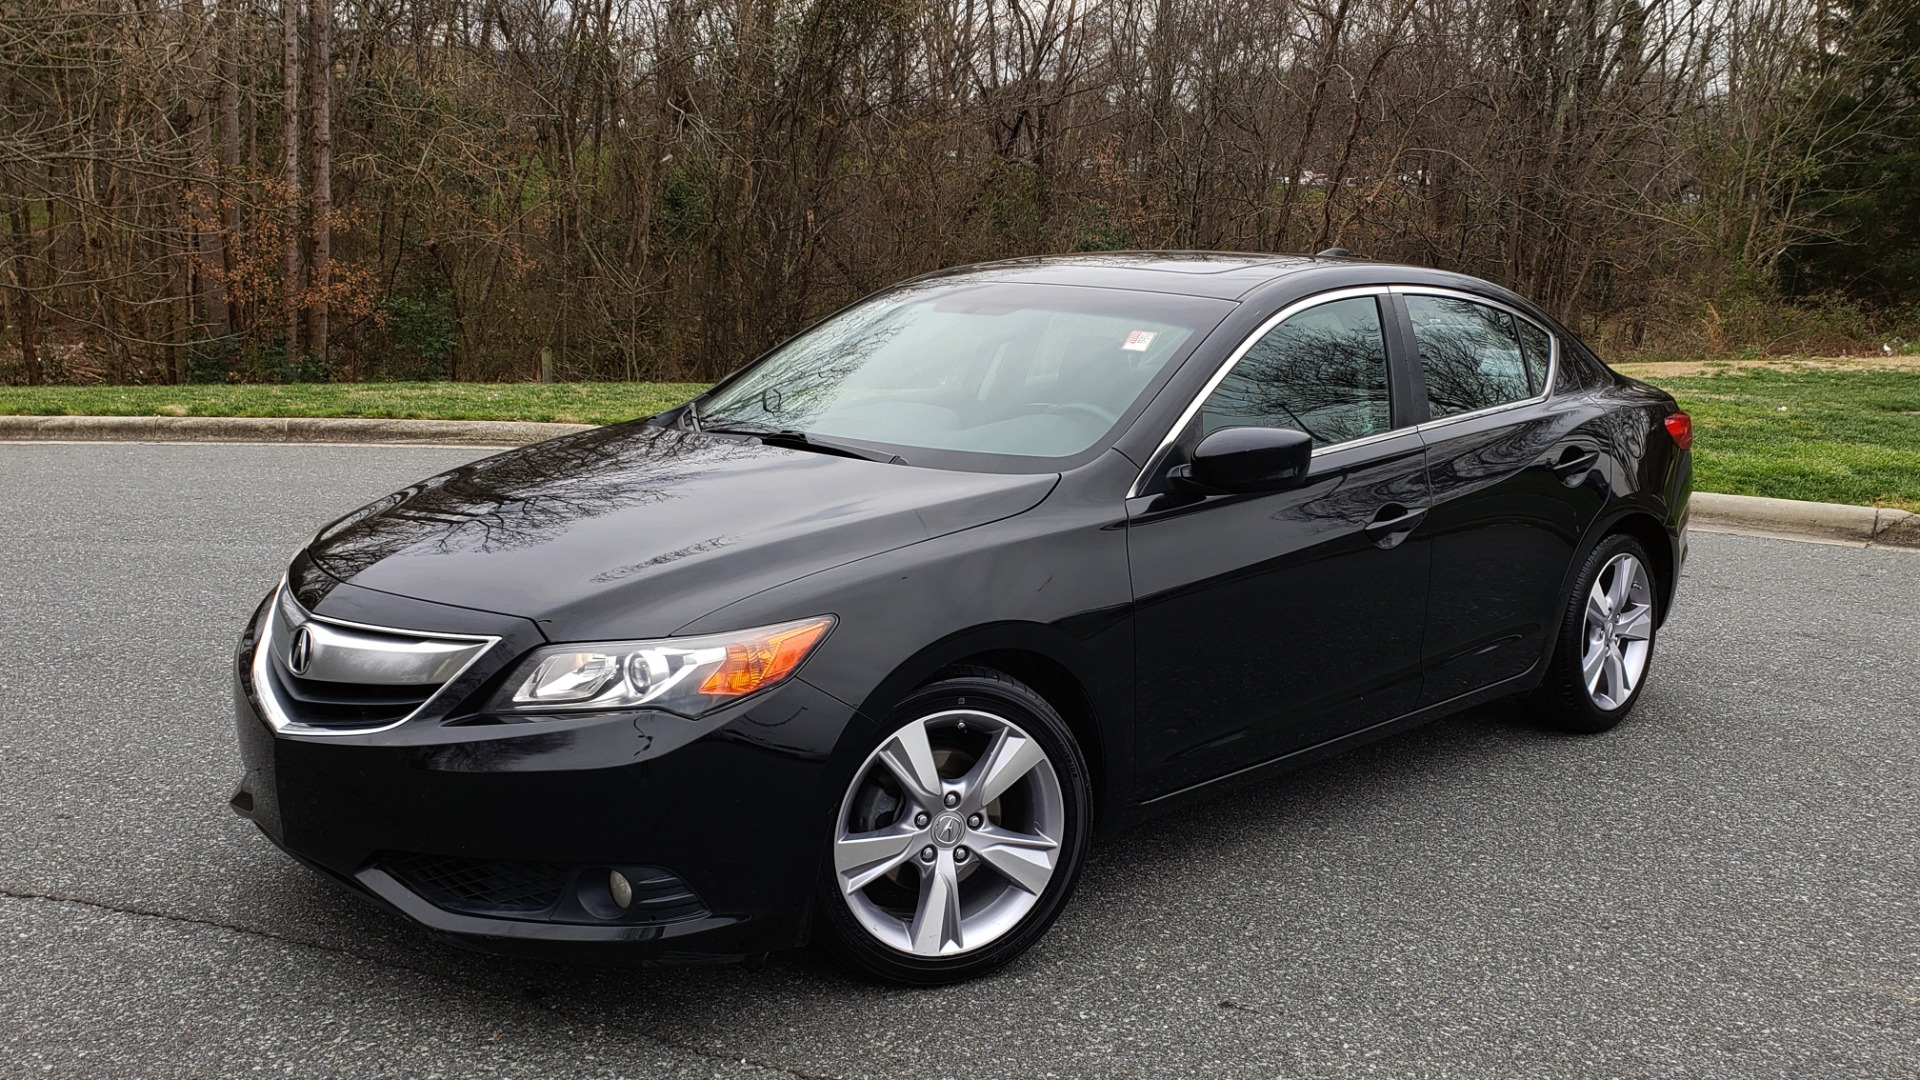 Used 2013 Acura ILX TECH PKG / SUNROOF / NAV / DUAL-ZONE A/C / REARVIEW for sale Sold at Formula Imports in Charlotte NC 28227 1